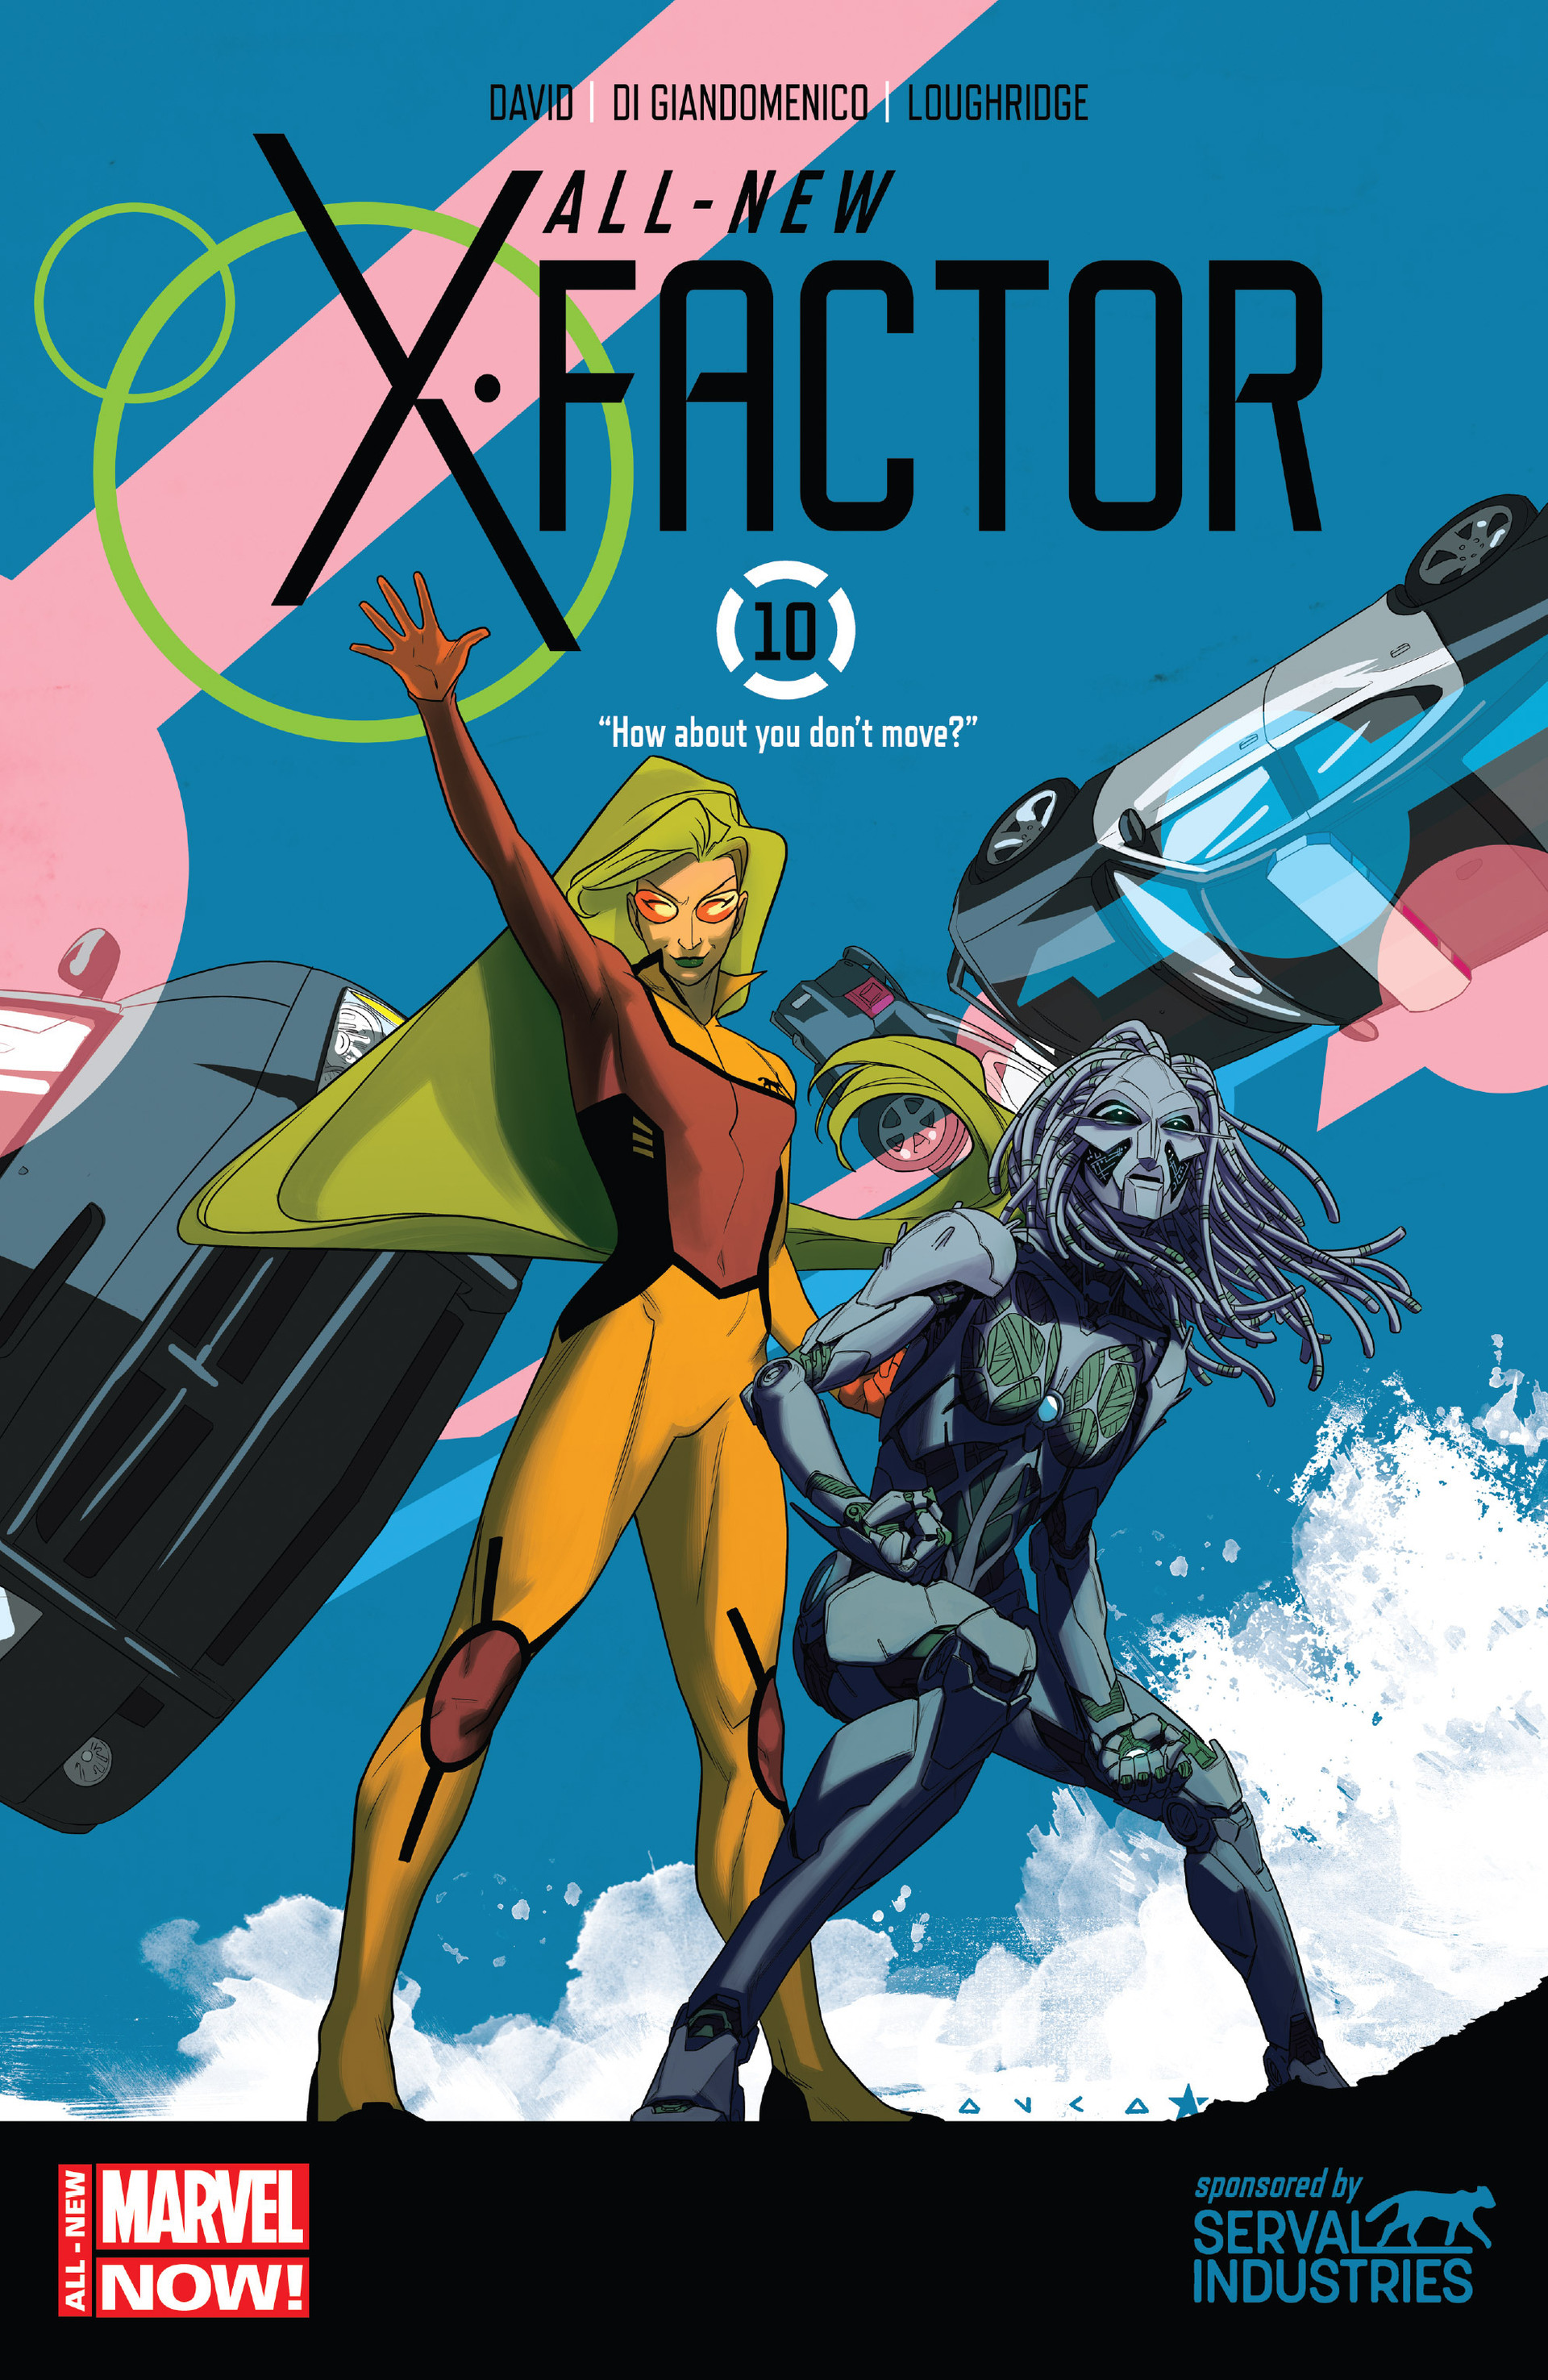 Read online All-New X-Factor comic -  Issue #10 - 1